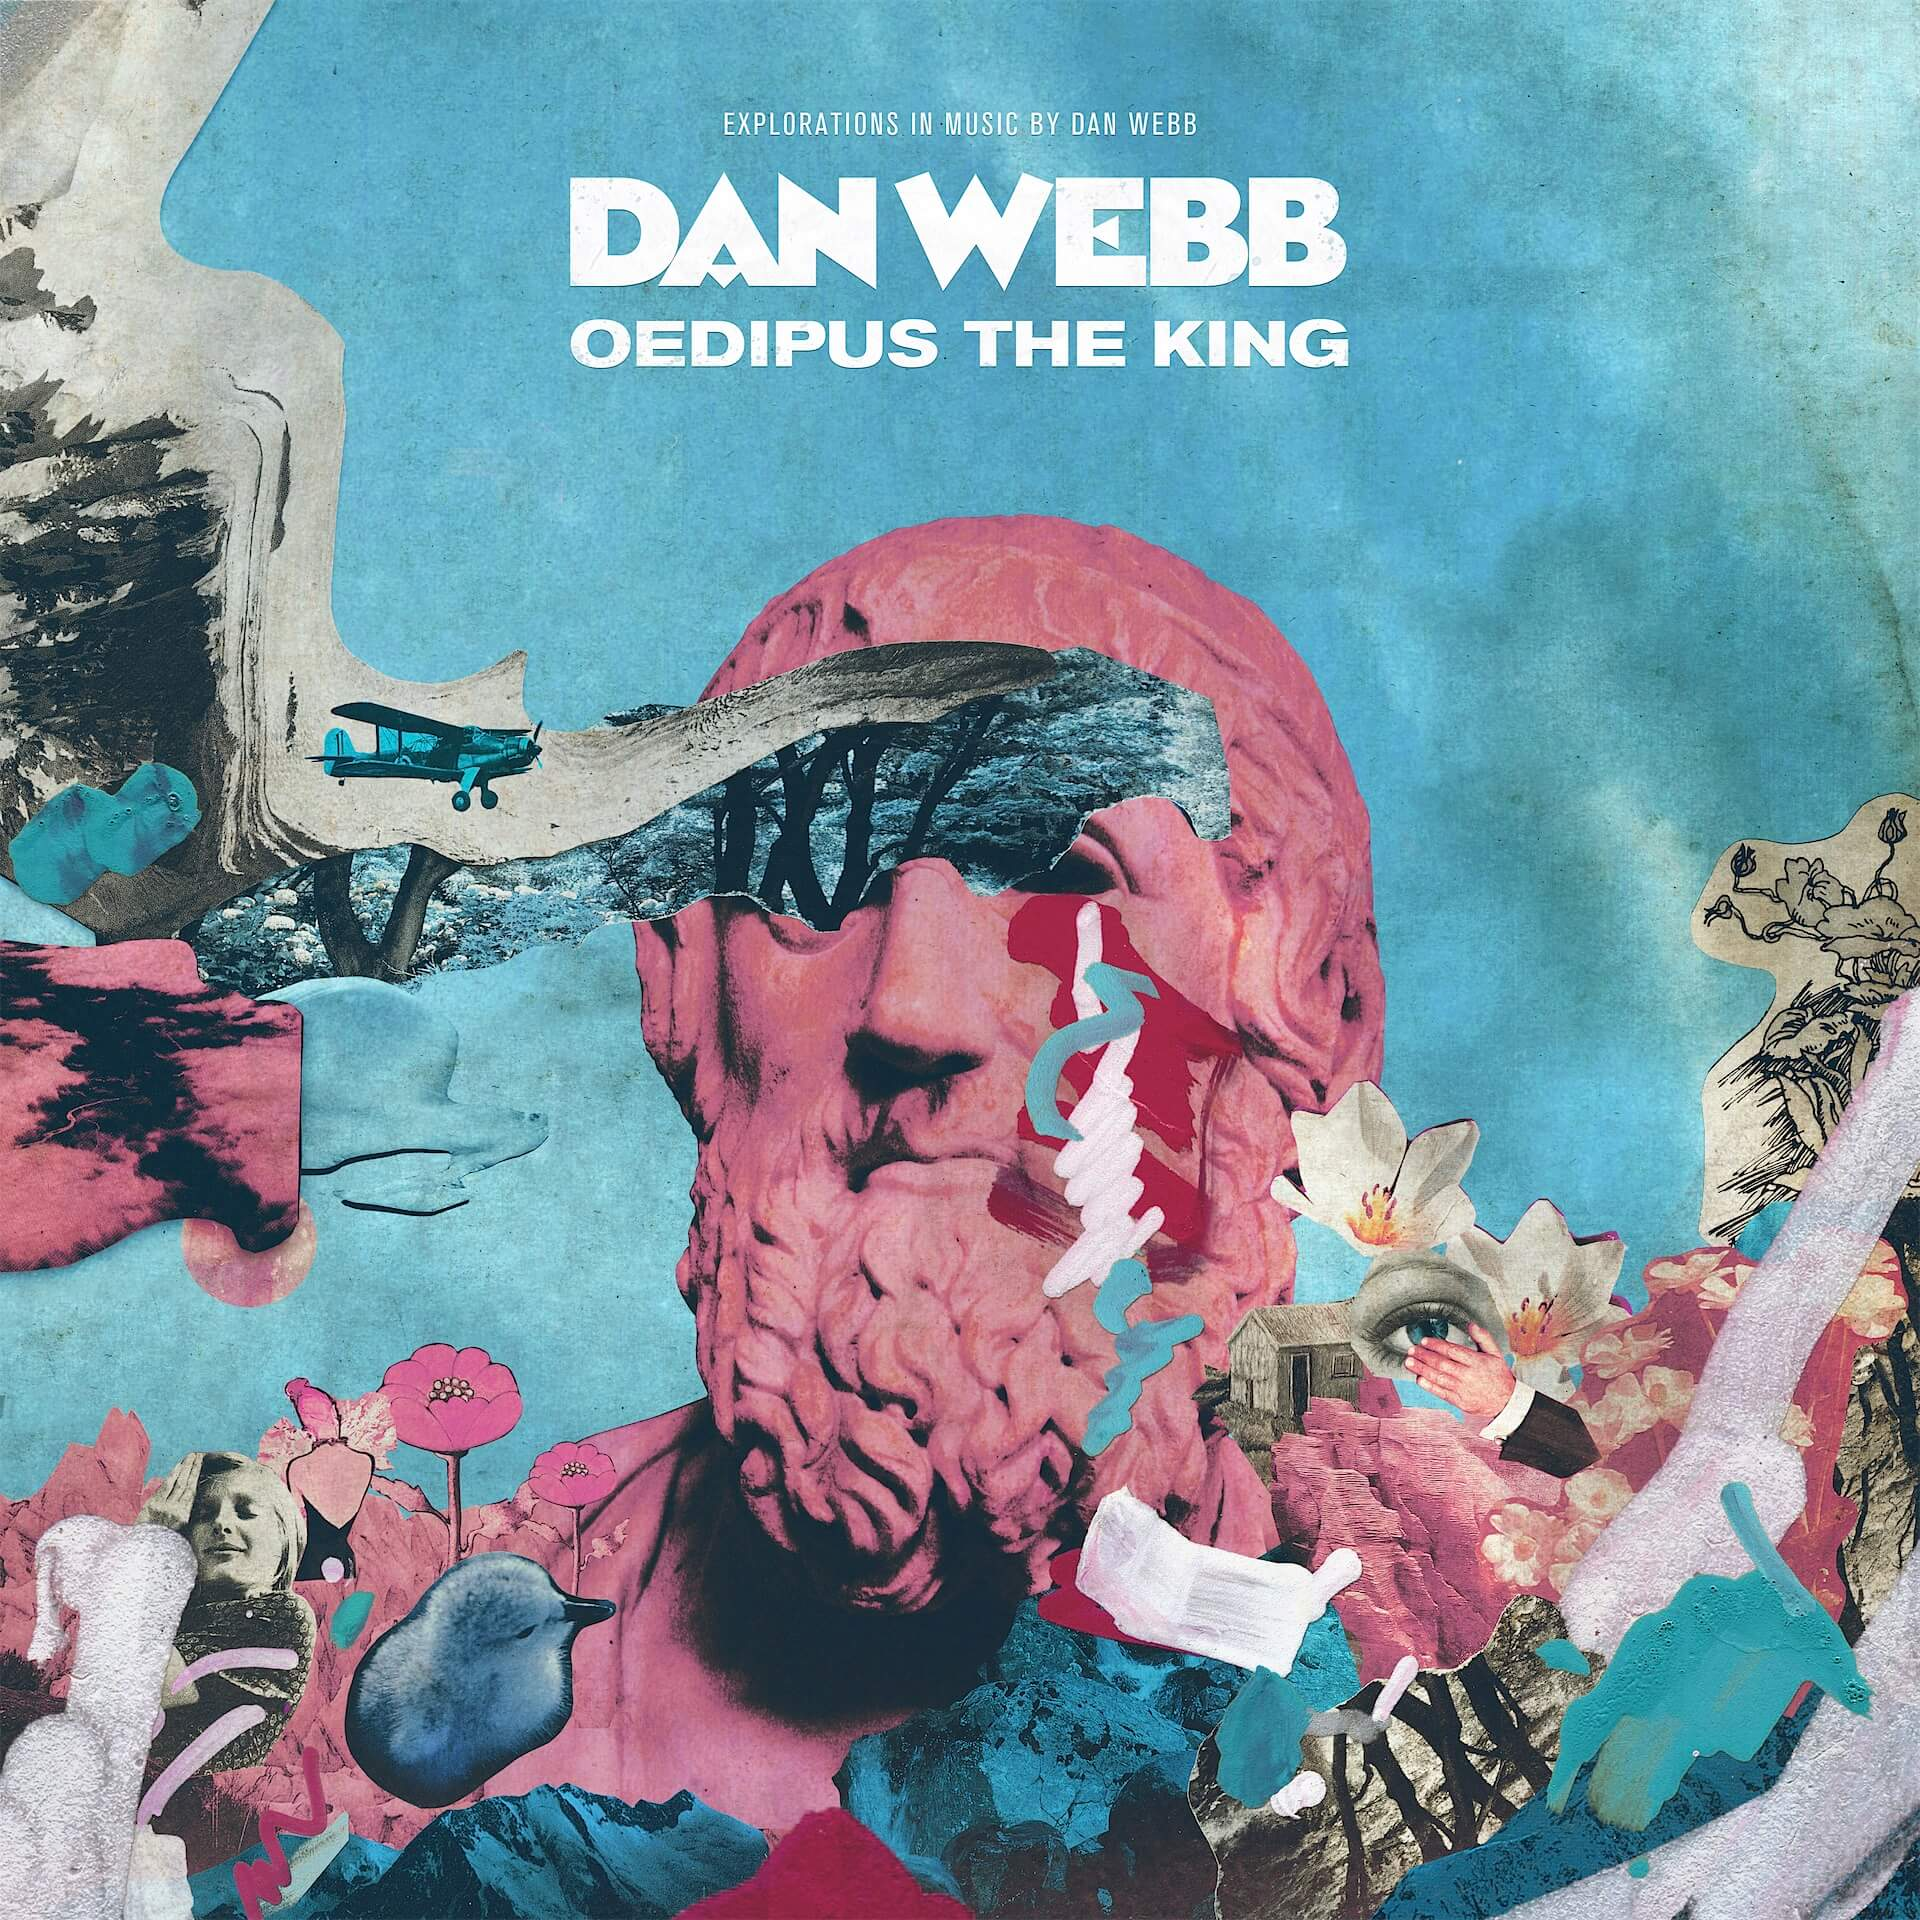 Dan Webb – Oedipus The King